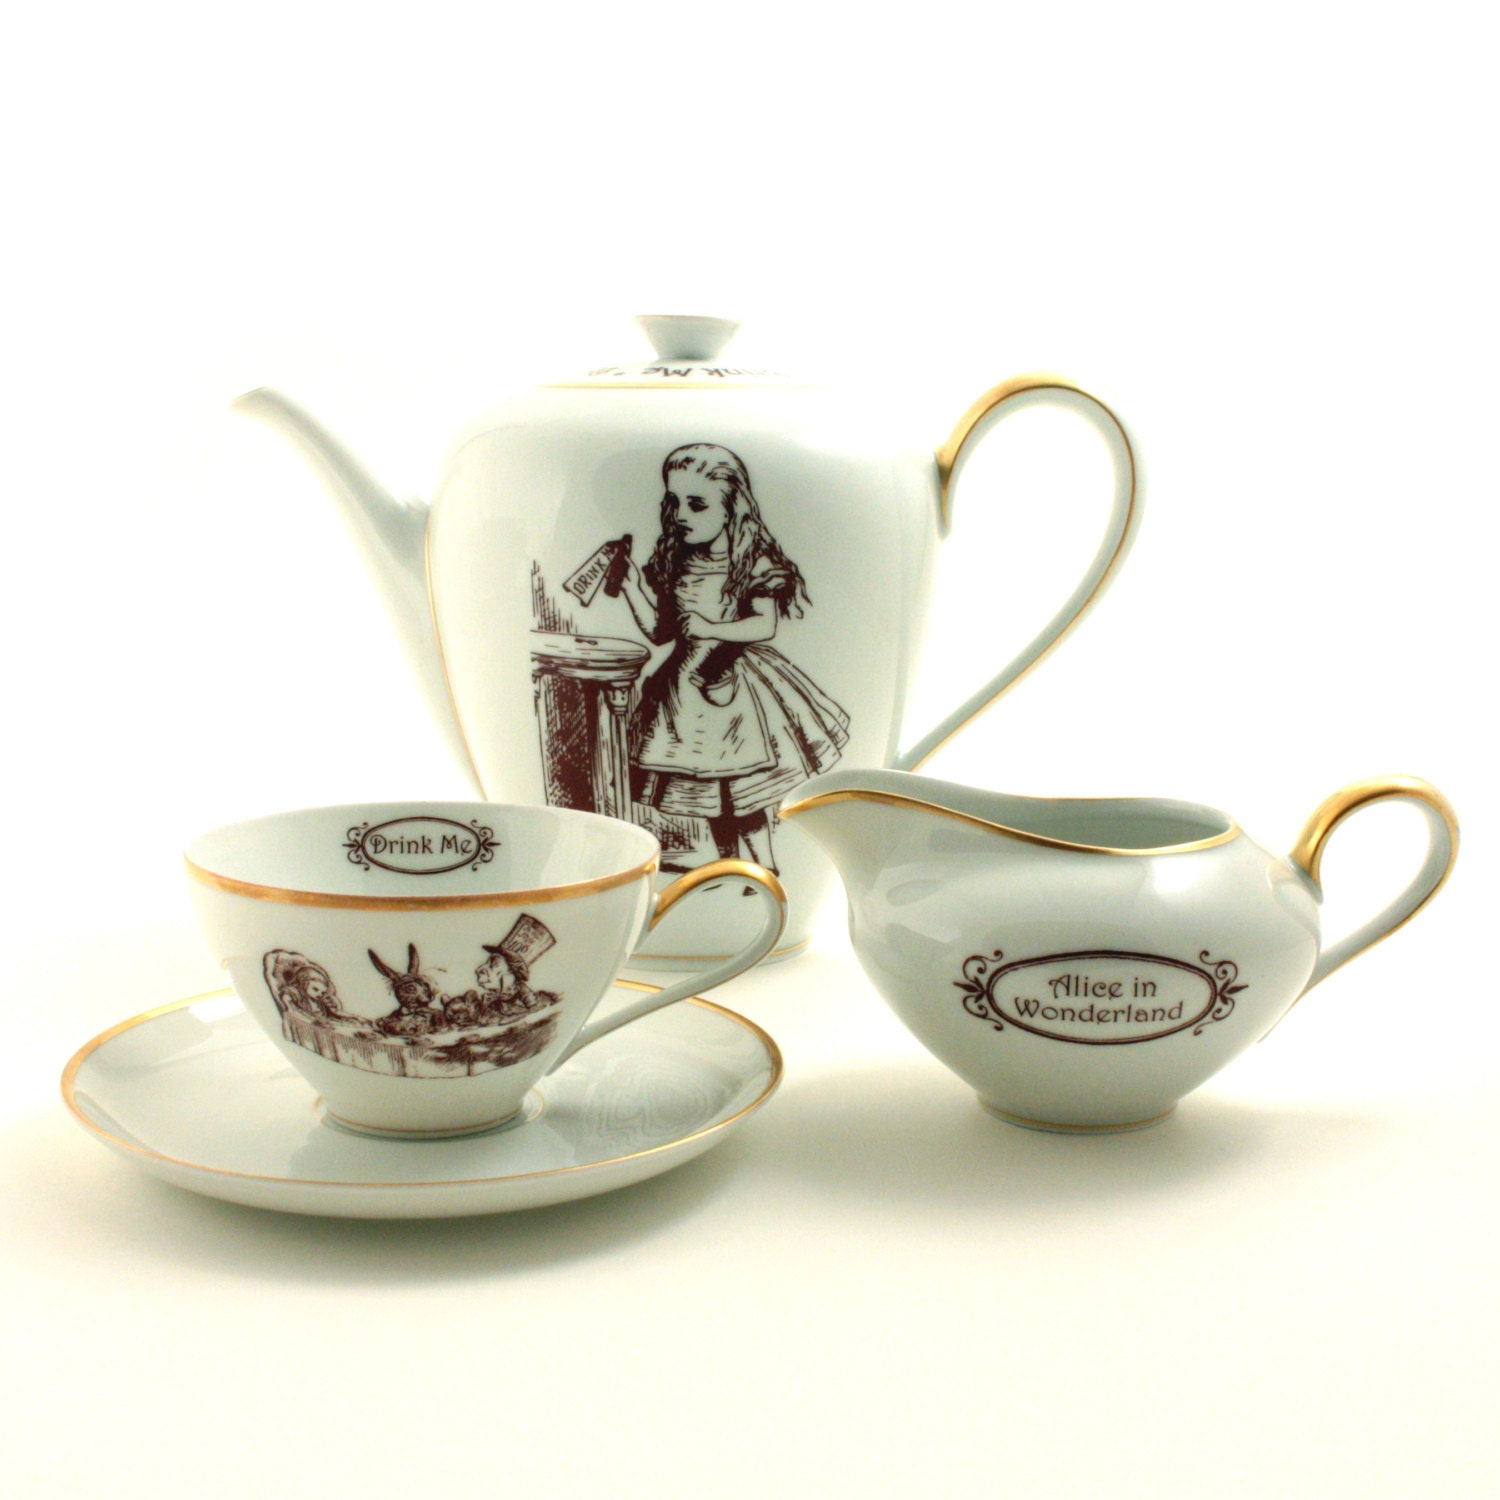 alice im wunderland recycled teekanne tasse milchkanne vintage. Black Bedroom Furniture Sets. Home Design Ideas